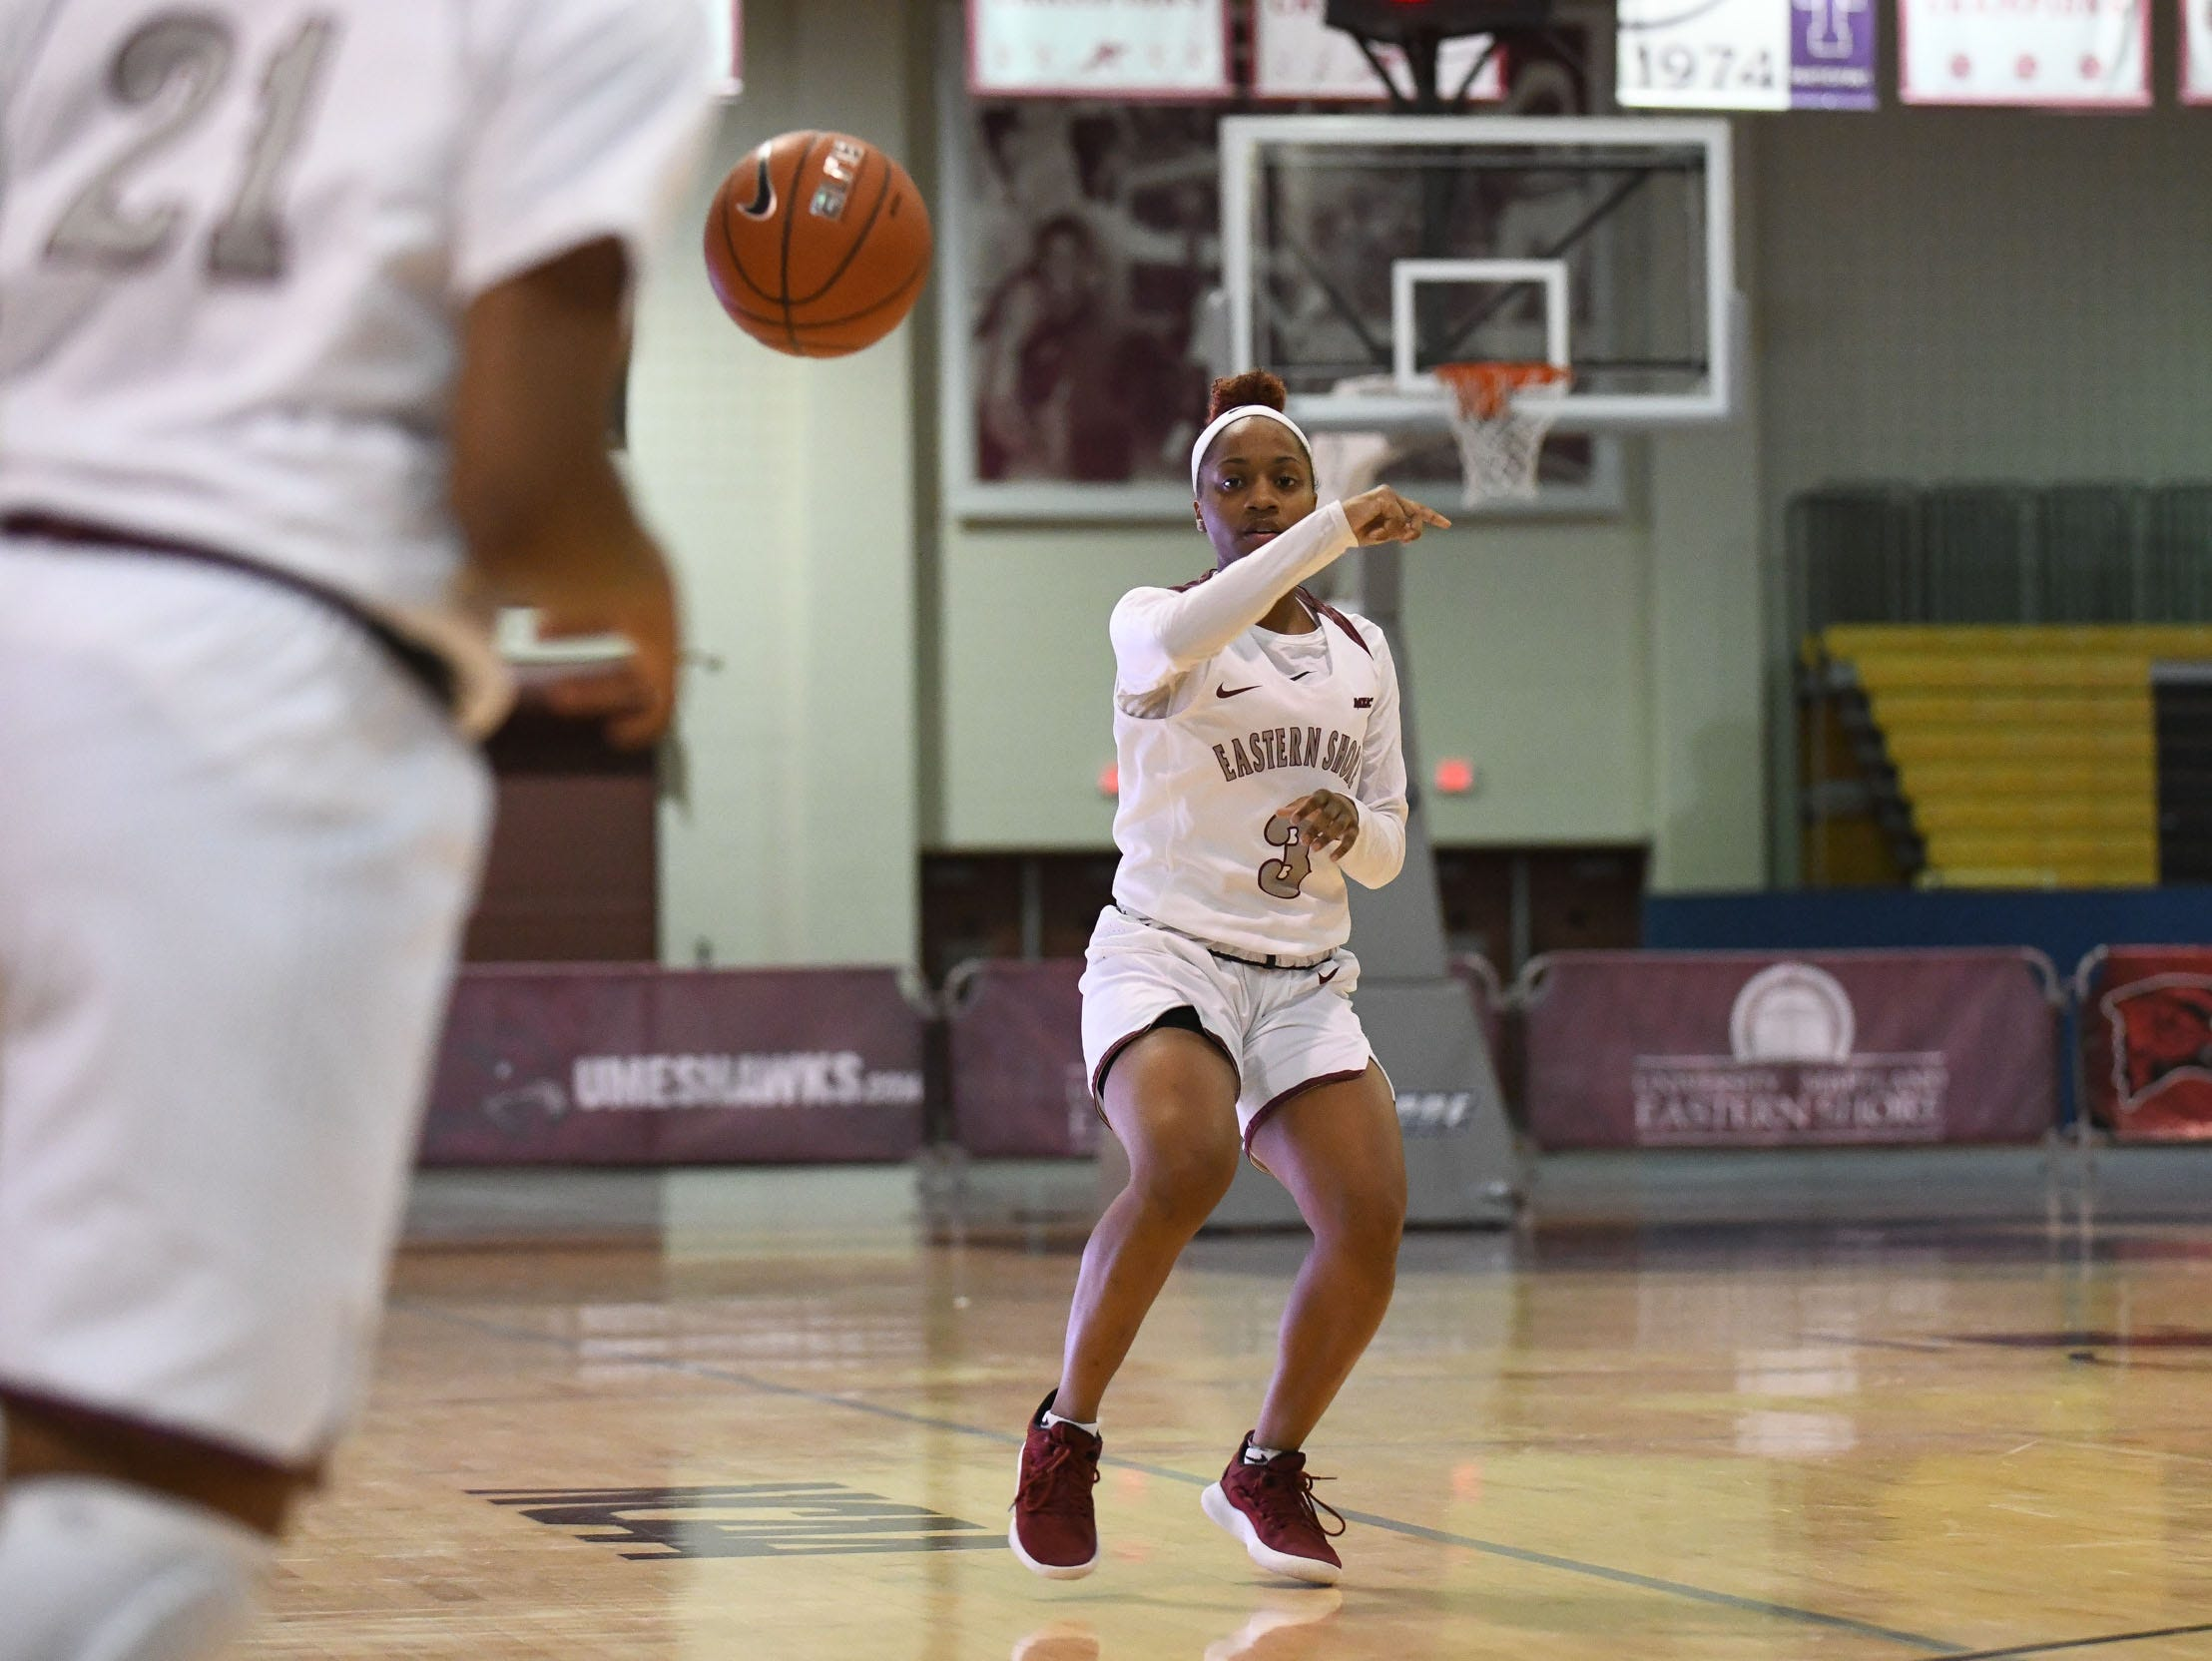 Maryland Eastern Shore's Brooklyn Bailey with the pass during the game against Howard University on Monday, Jan 7, 2018.